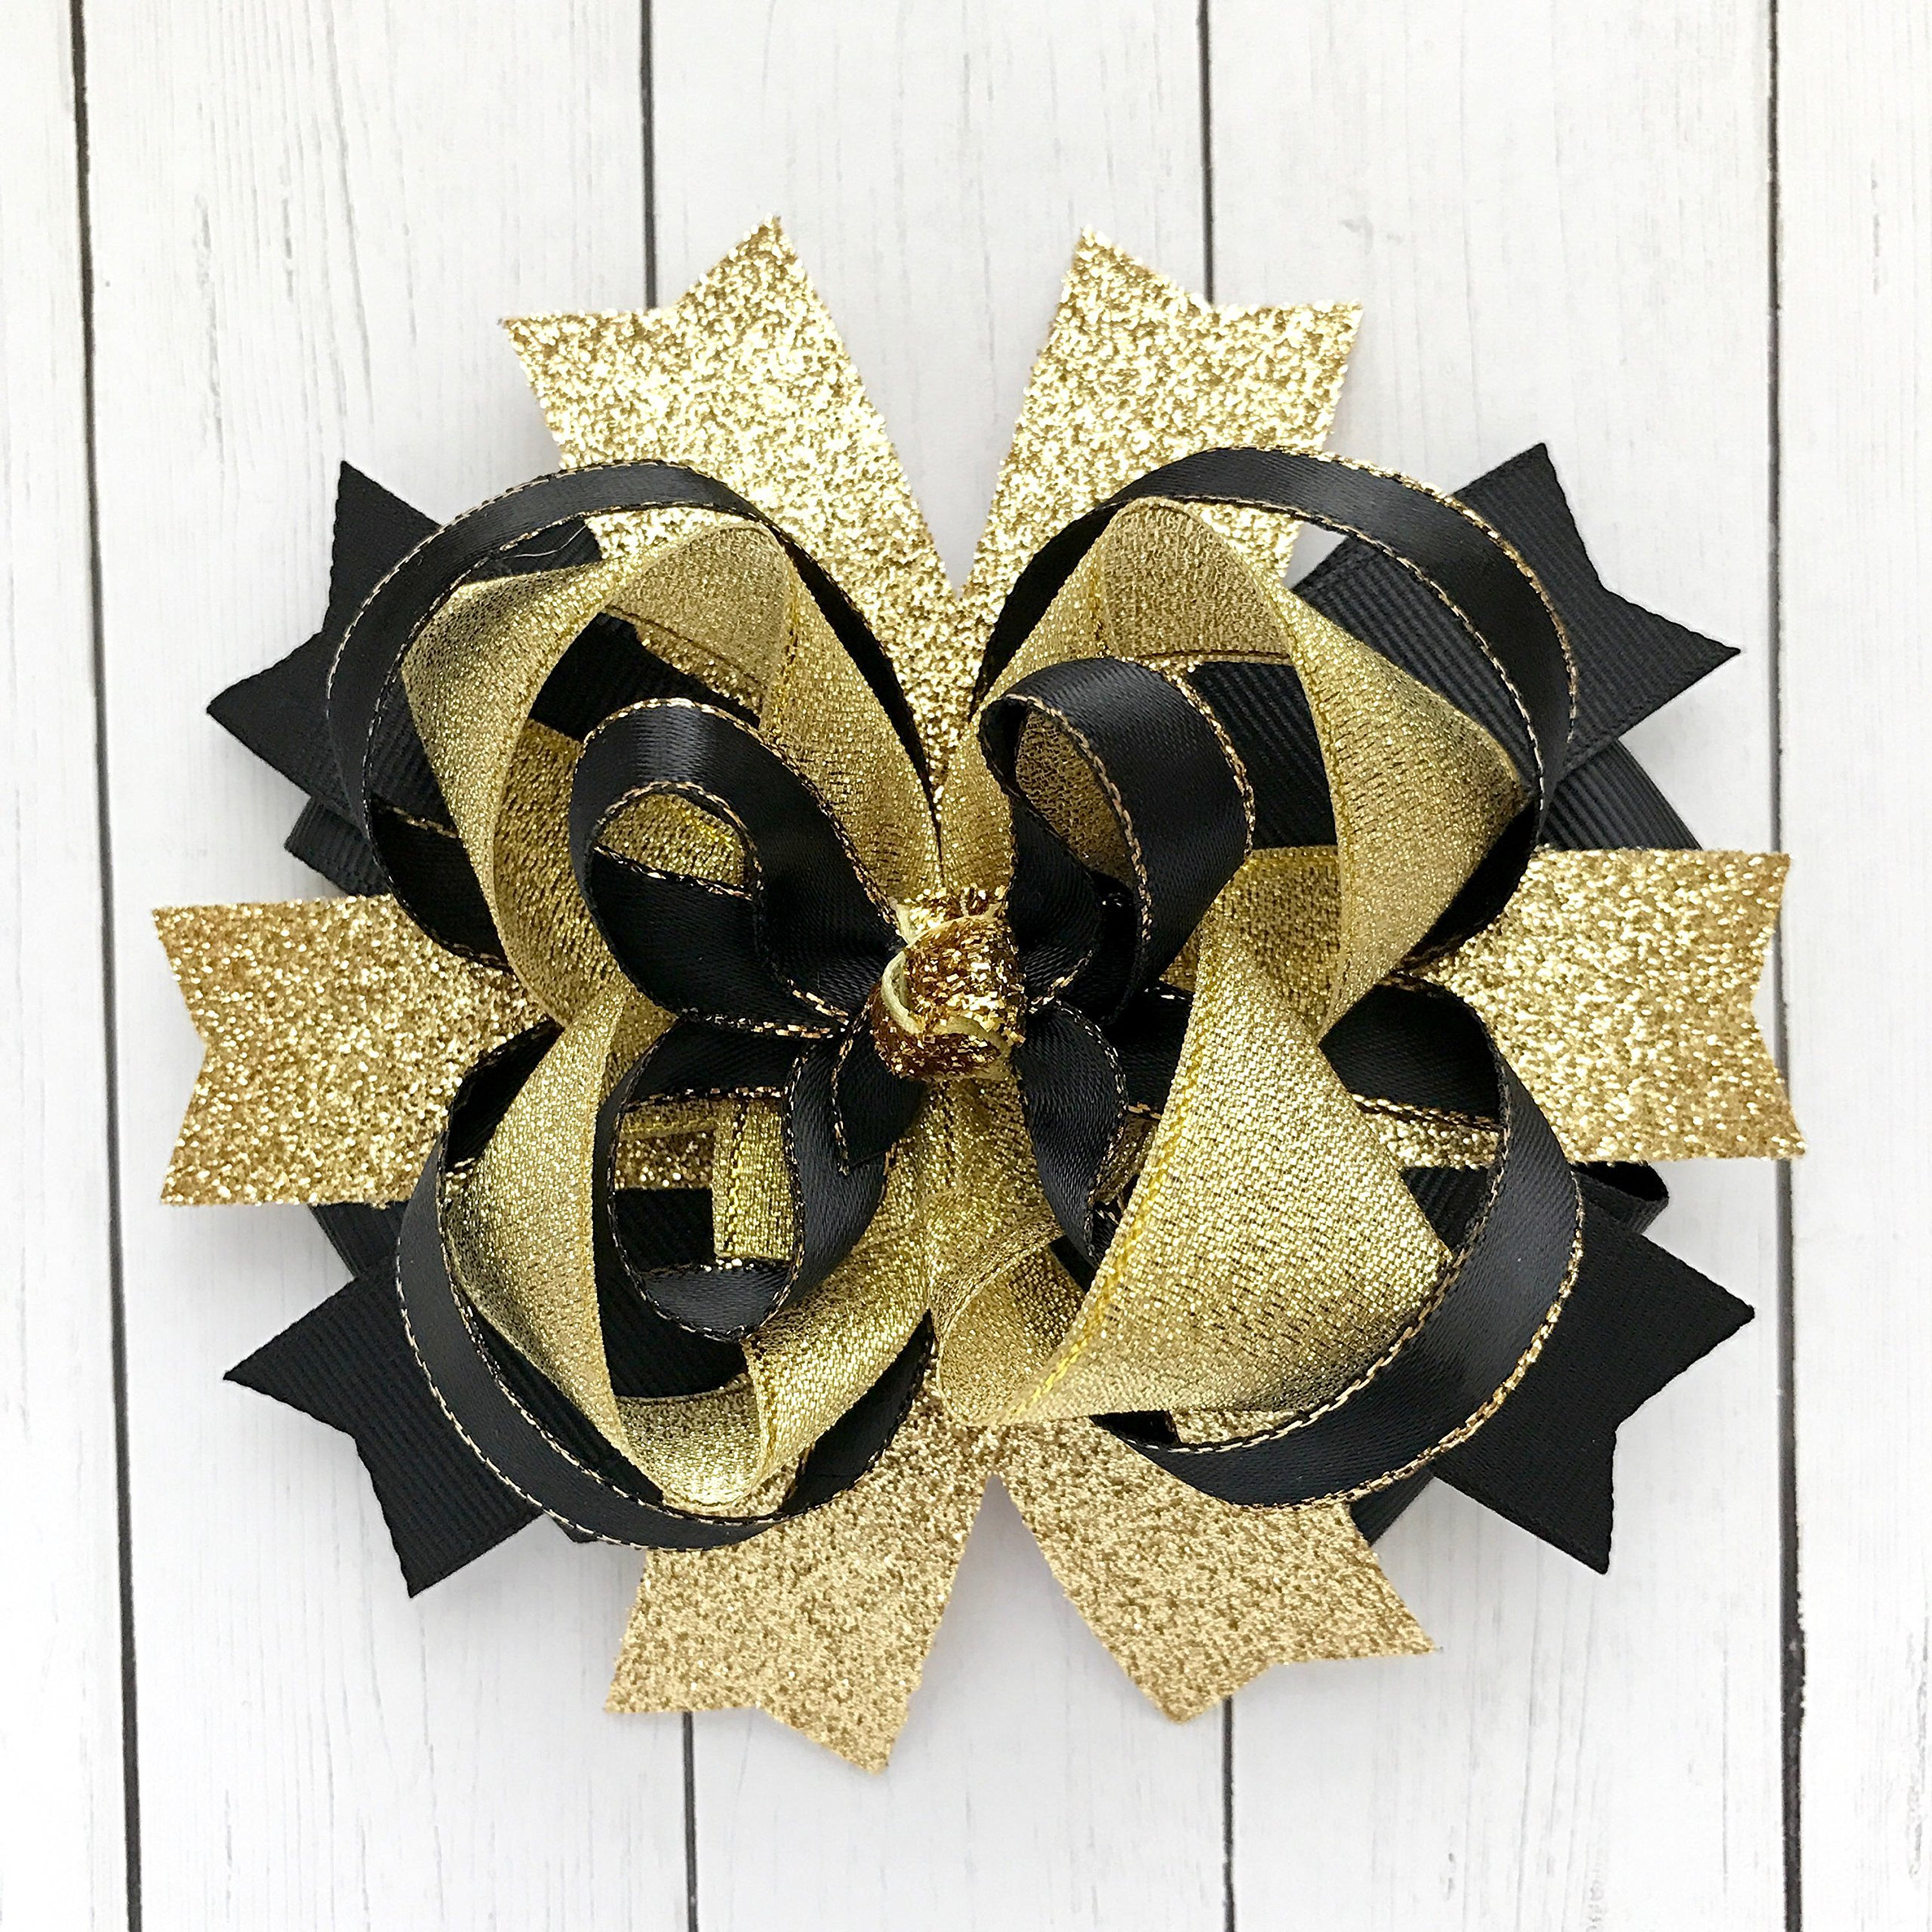 Black and Gold Hair Bow, Handmade Boutique Glitter Sparkling Hair Bow, Large Layered Gold Hair Bows